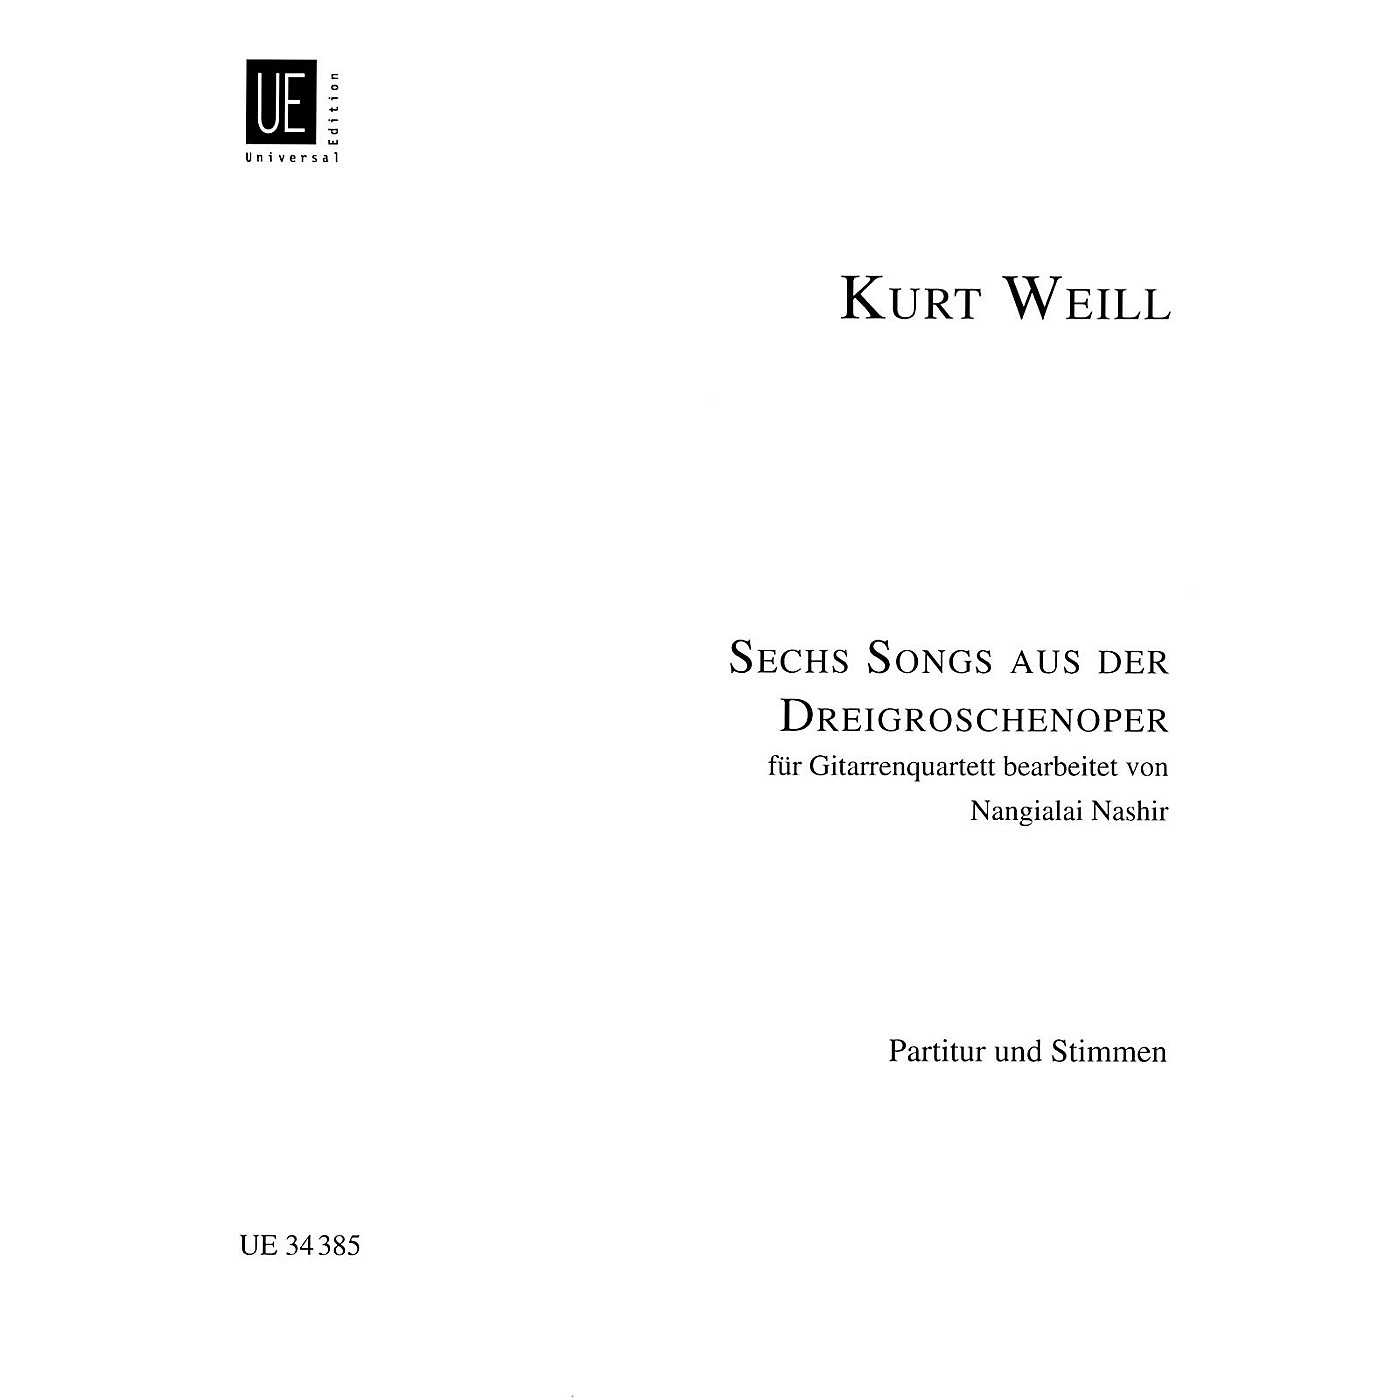 Hal Leonard 6 (six) Songs From Threepenny Opera For Guitar Quartet Score And Parts Guitar Series thumbnail